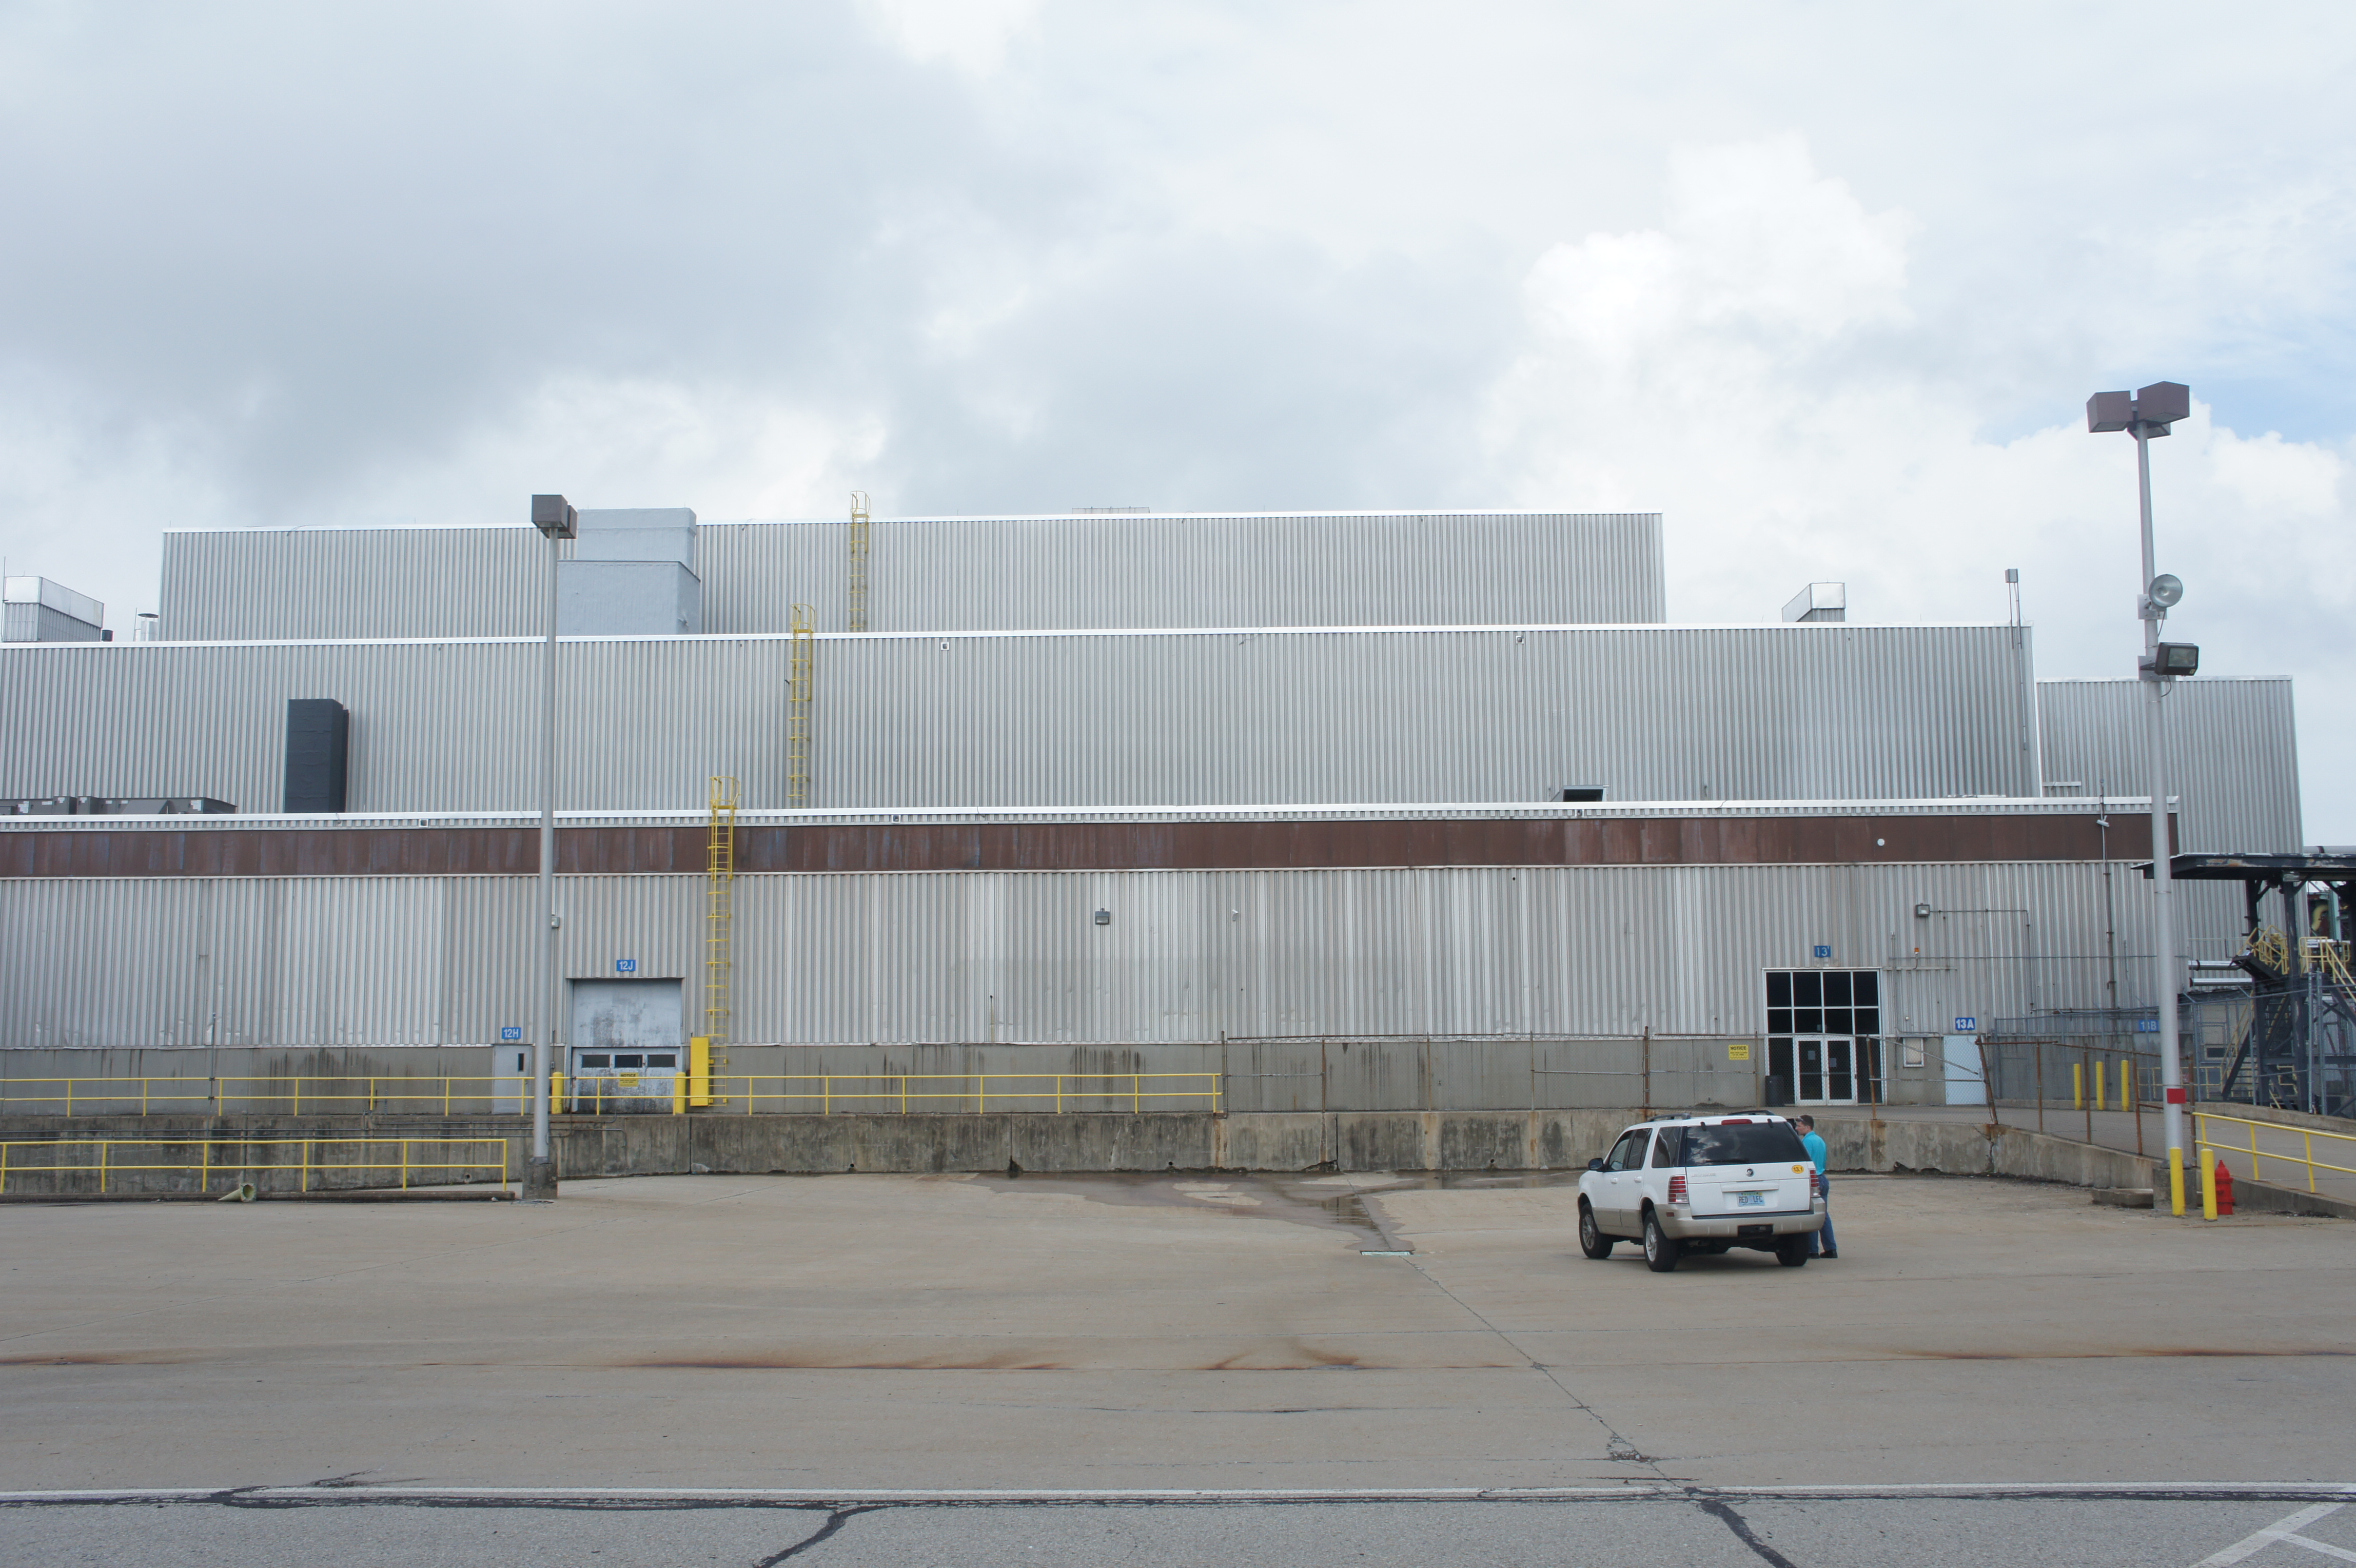 The 2.3 million sq. foot factory in Westmoreland County, PA. Image courtesy of Katie Fehrenbacher, Gigaom.